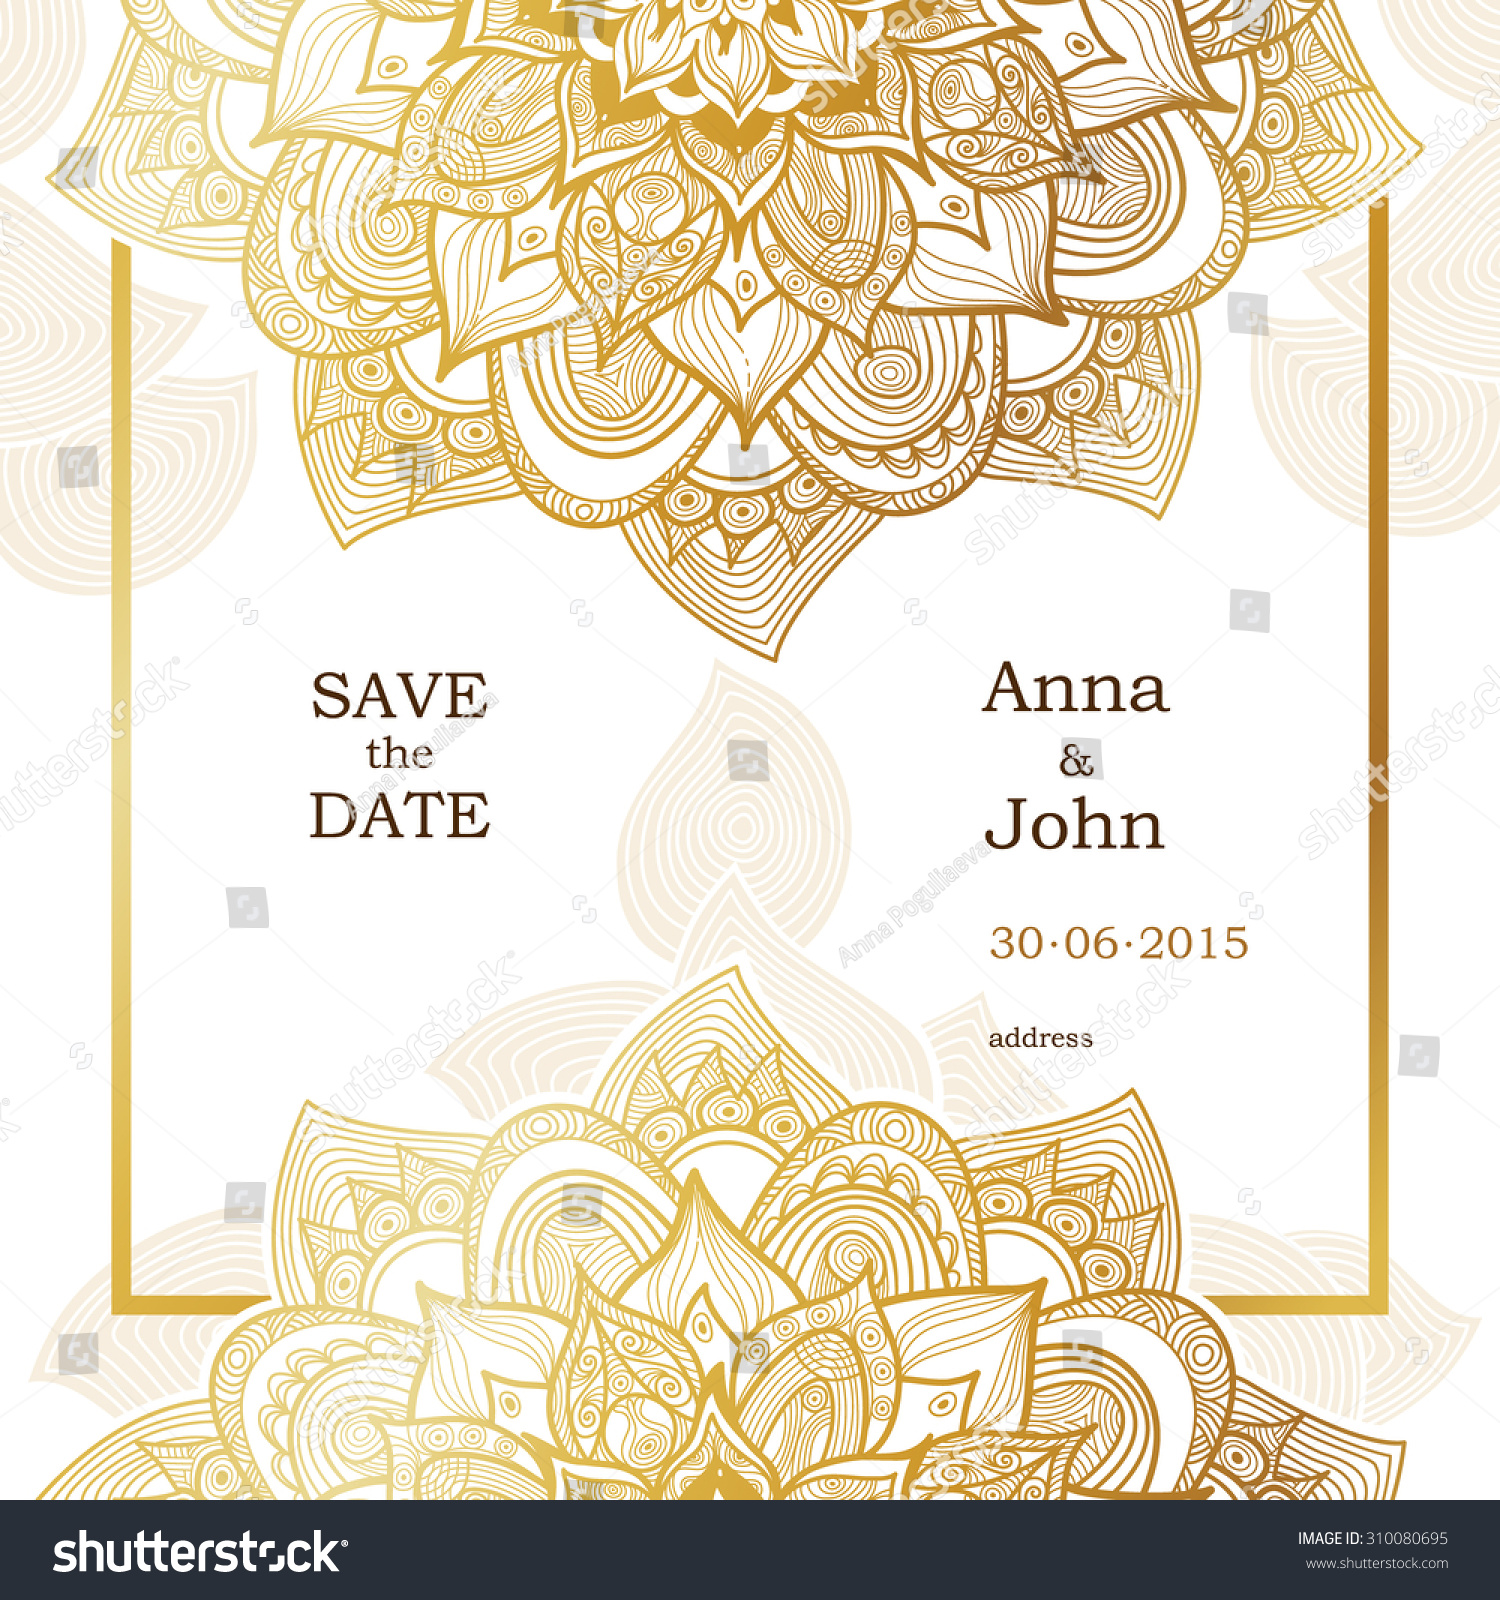 Golden vintage ornate cards outline floral stock vector for Decor outline